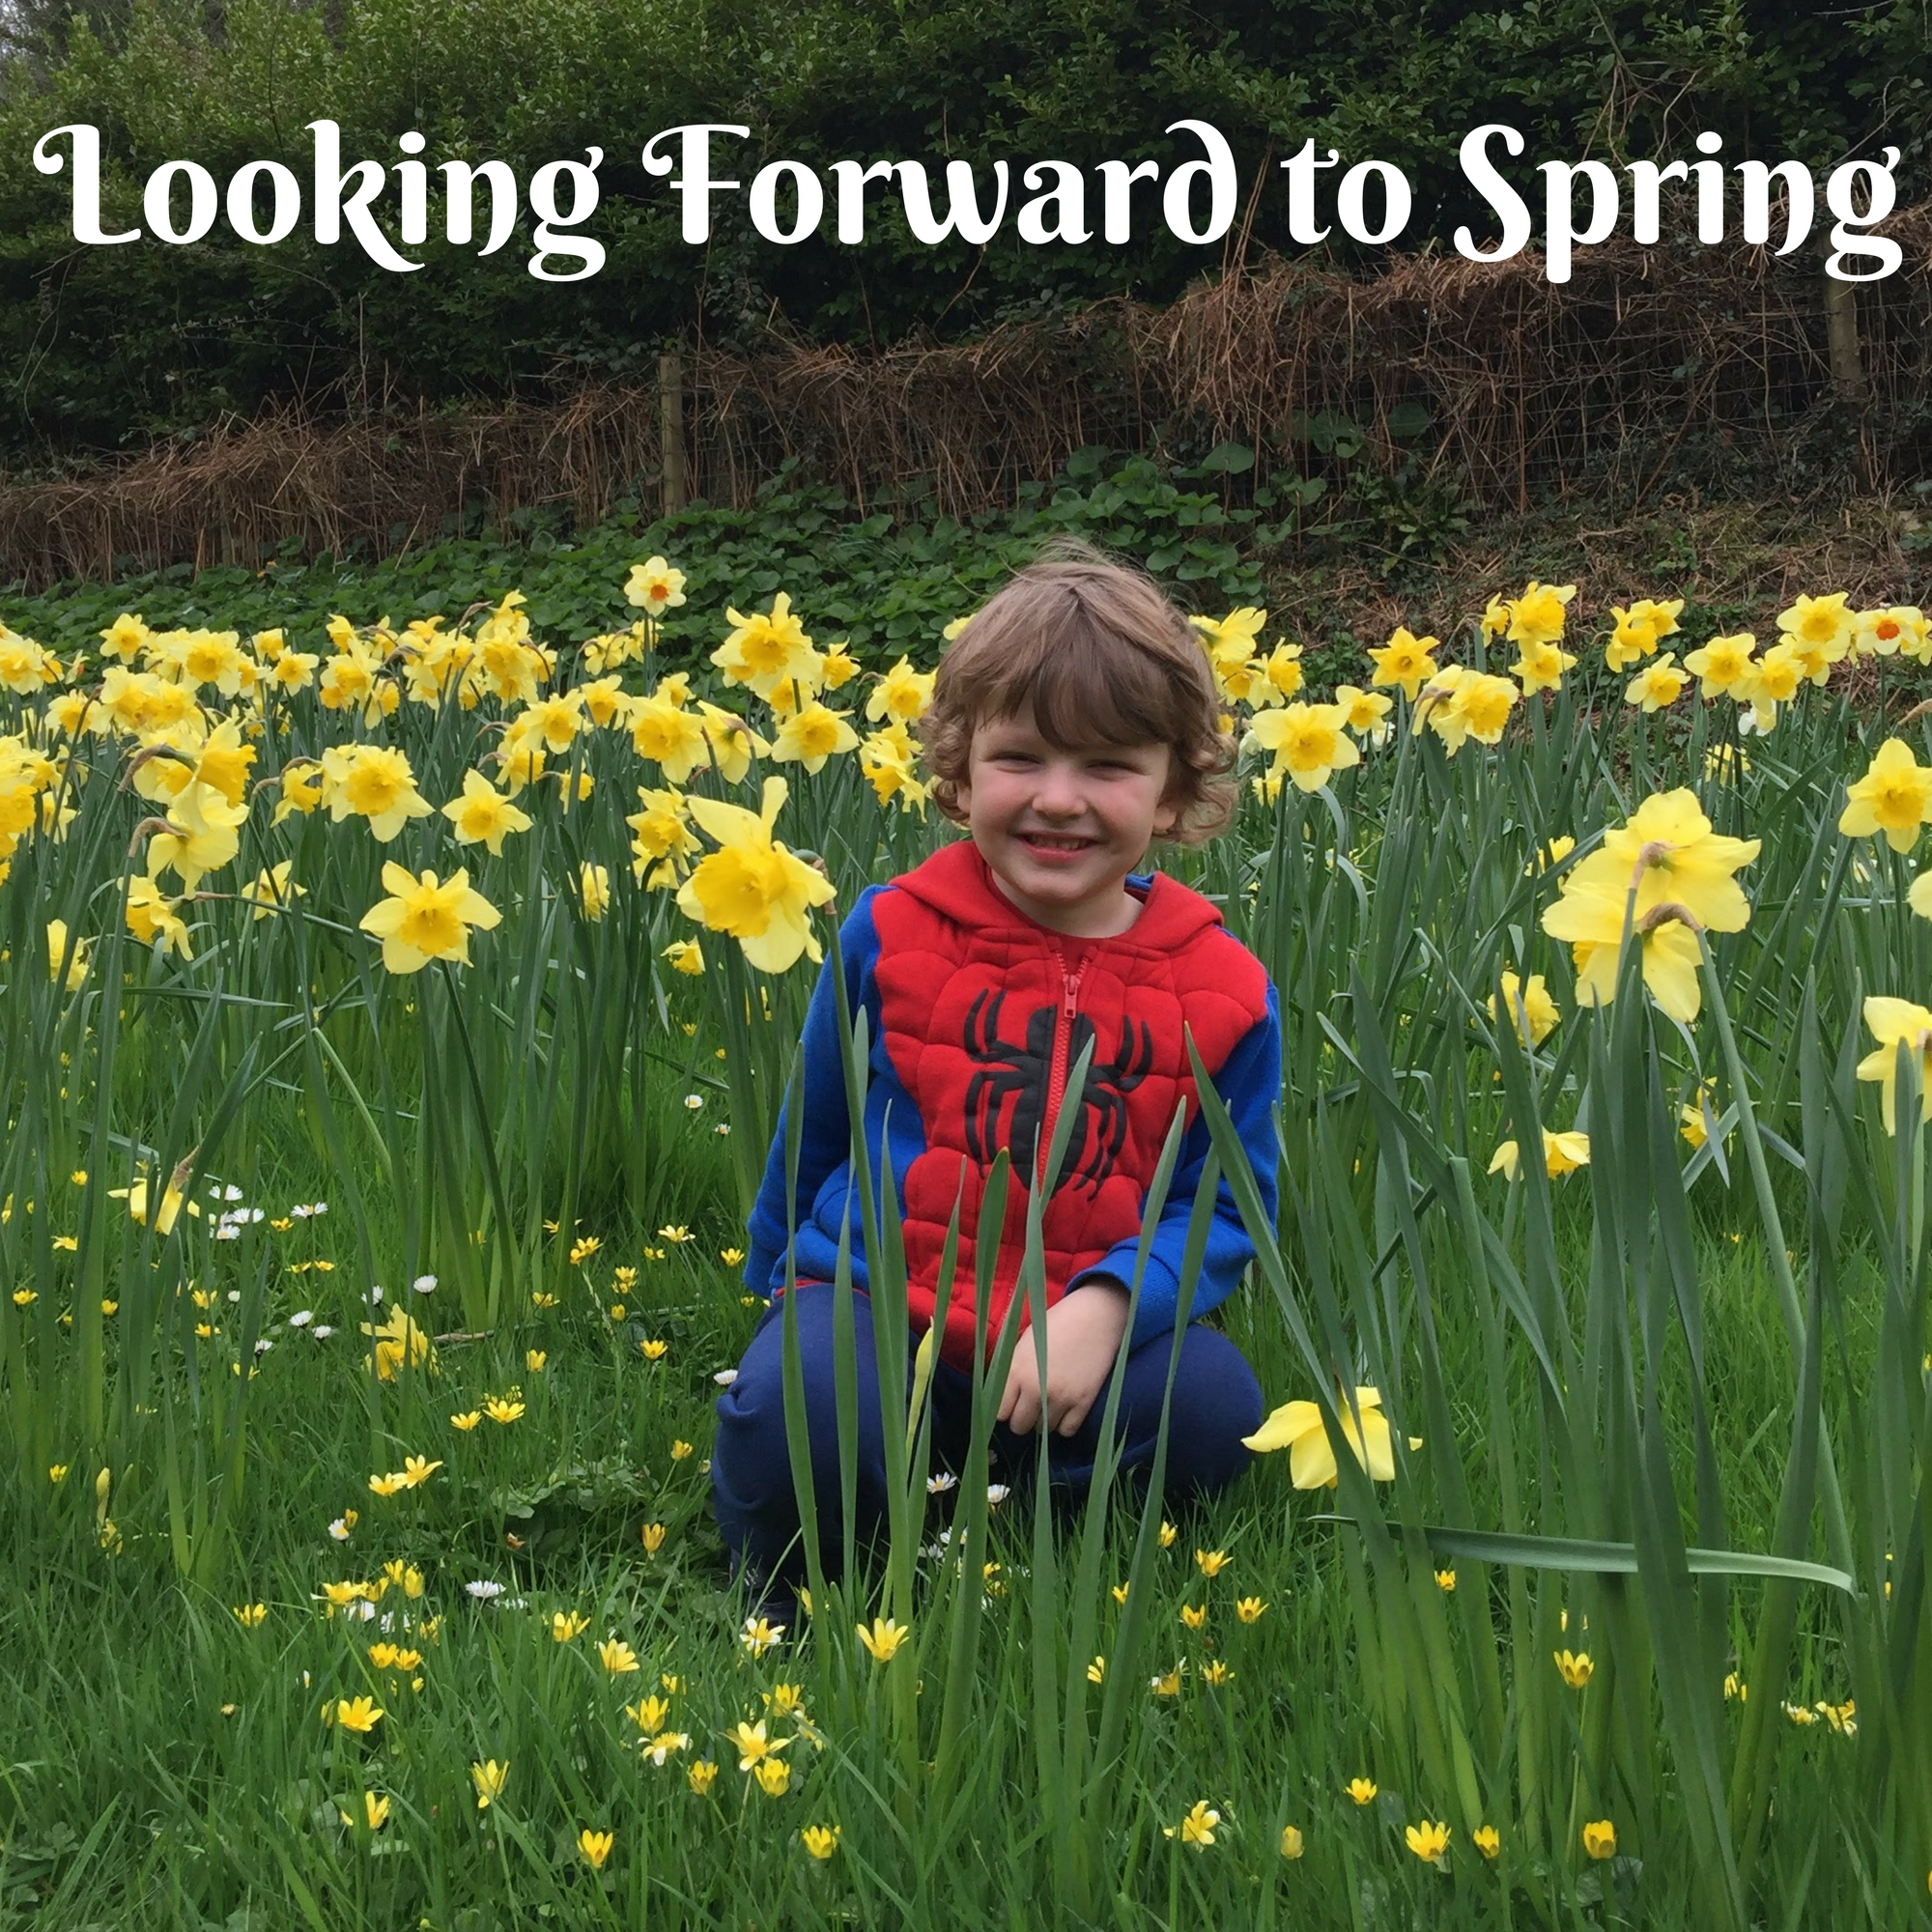 Looking Forward to Spring